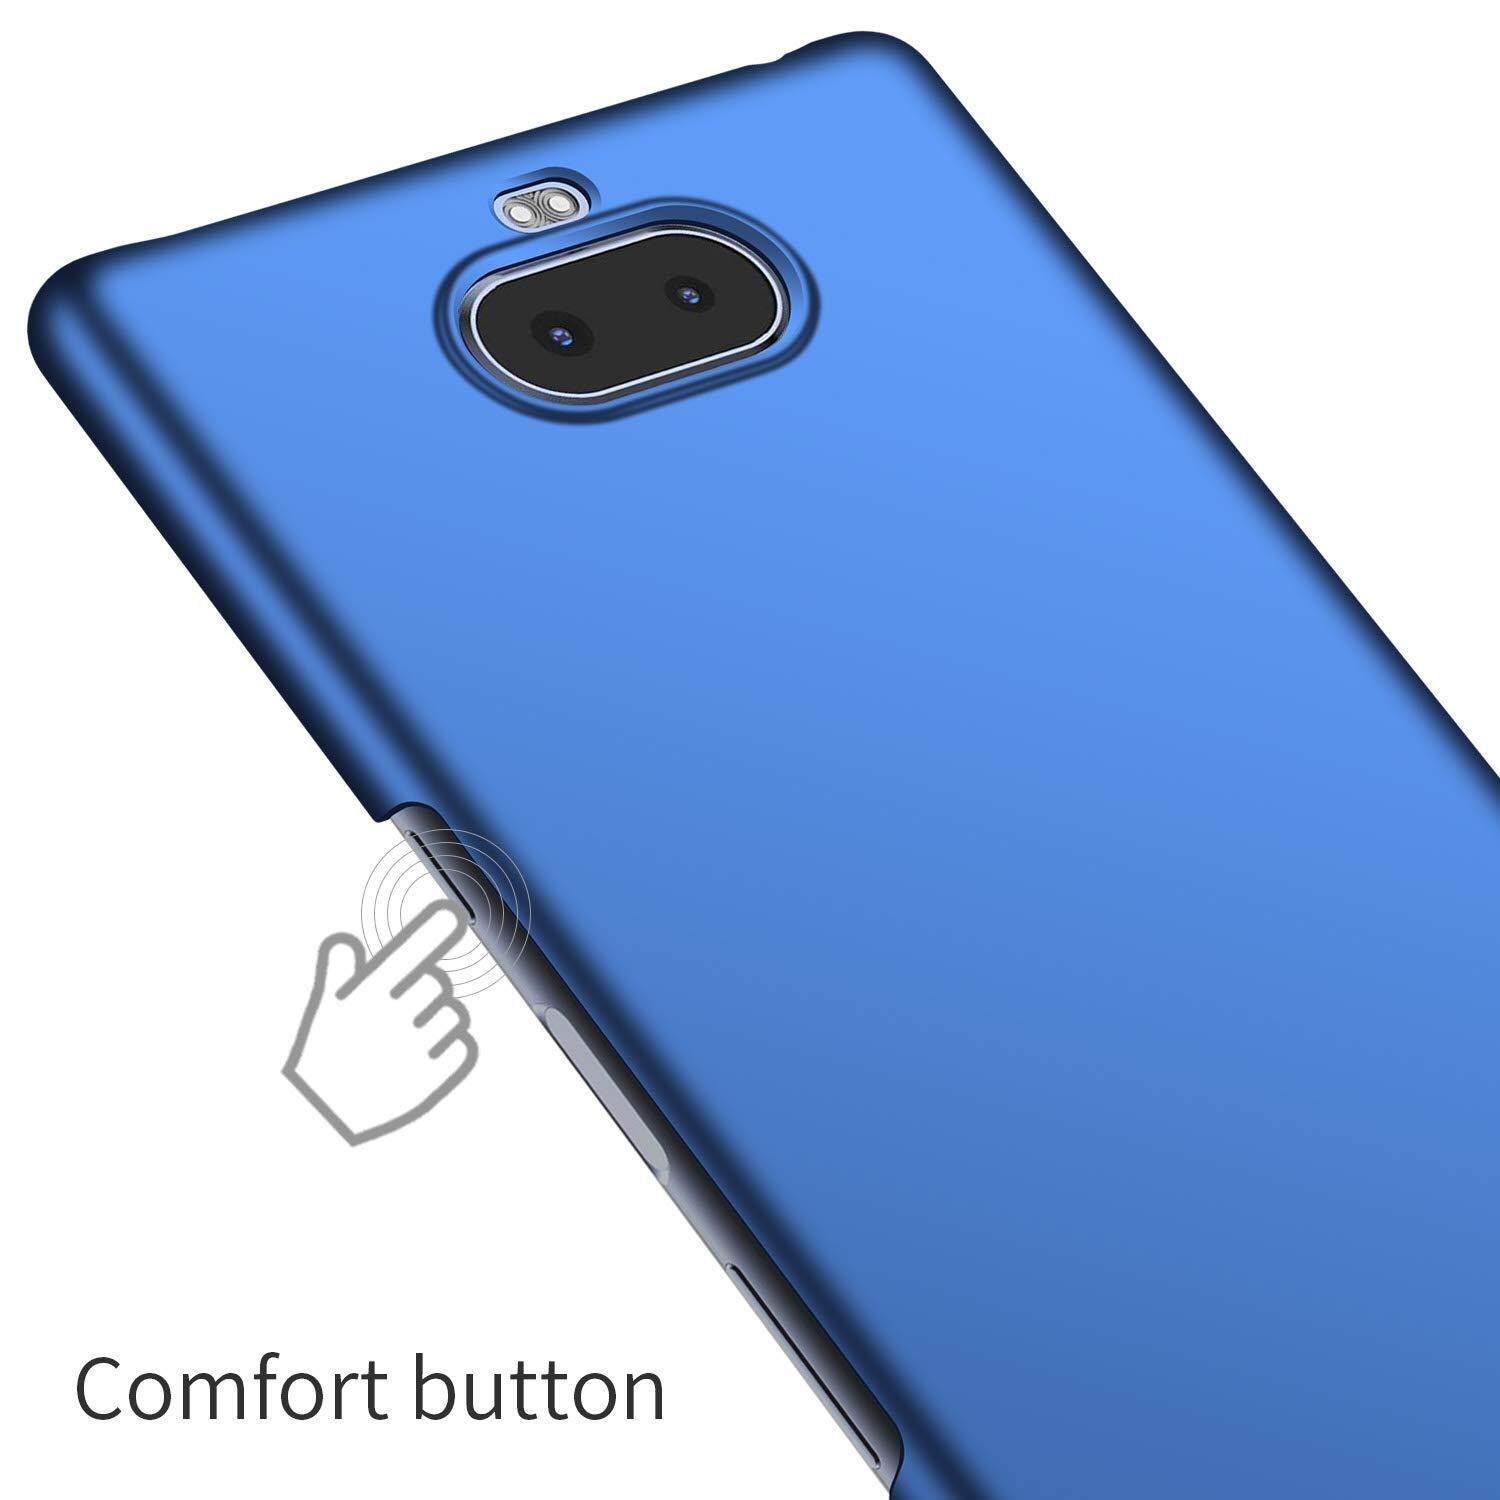 ... For Sony Xperia 10 Plus Case Ultra Thin Premium PC Material Protective Phone Case Back Cover ...